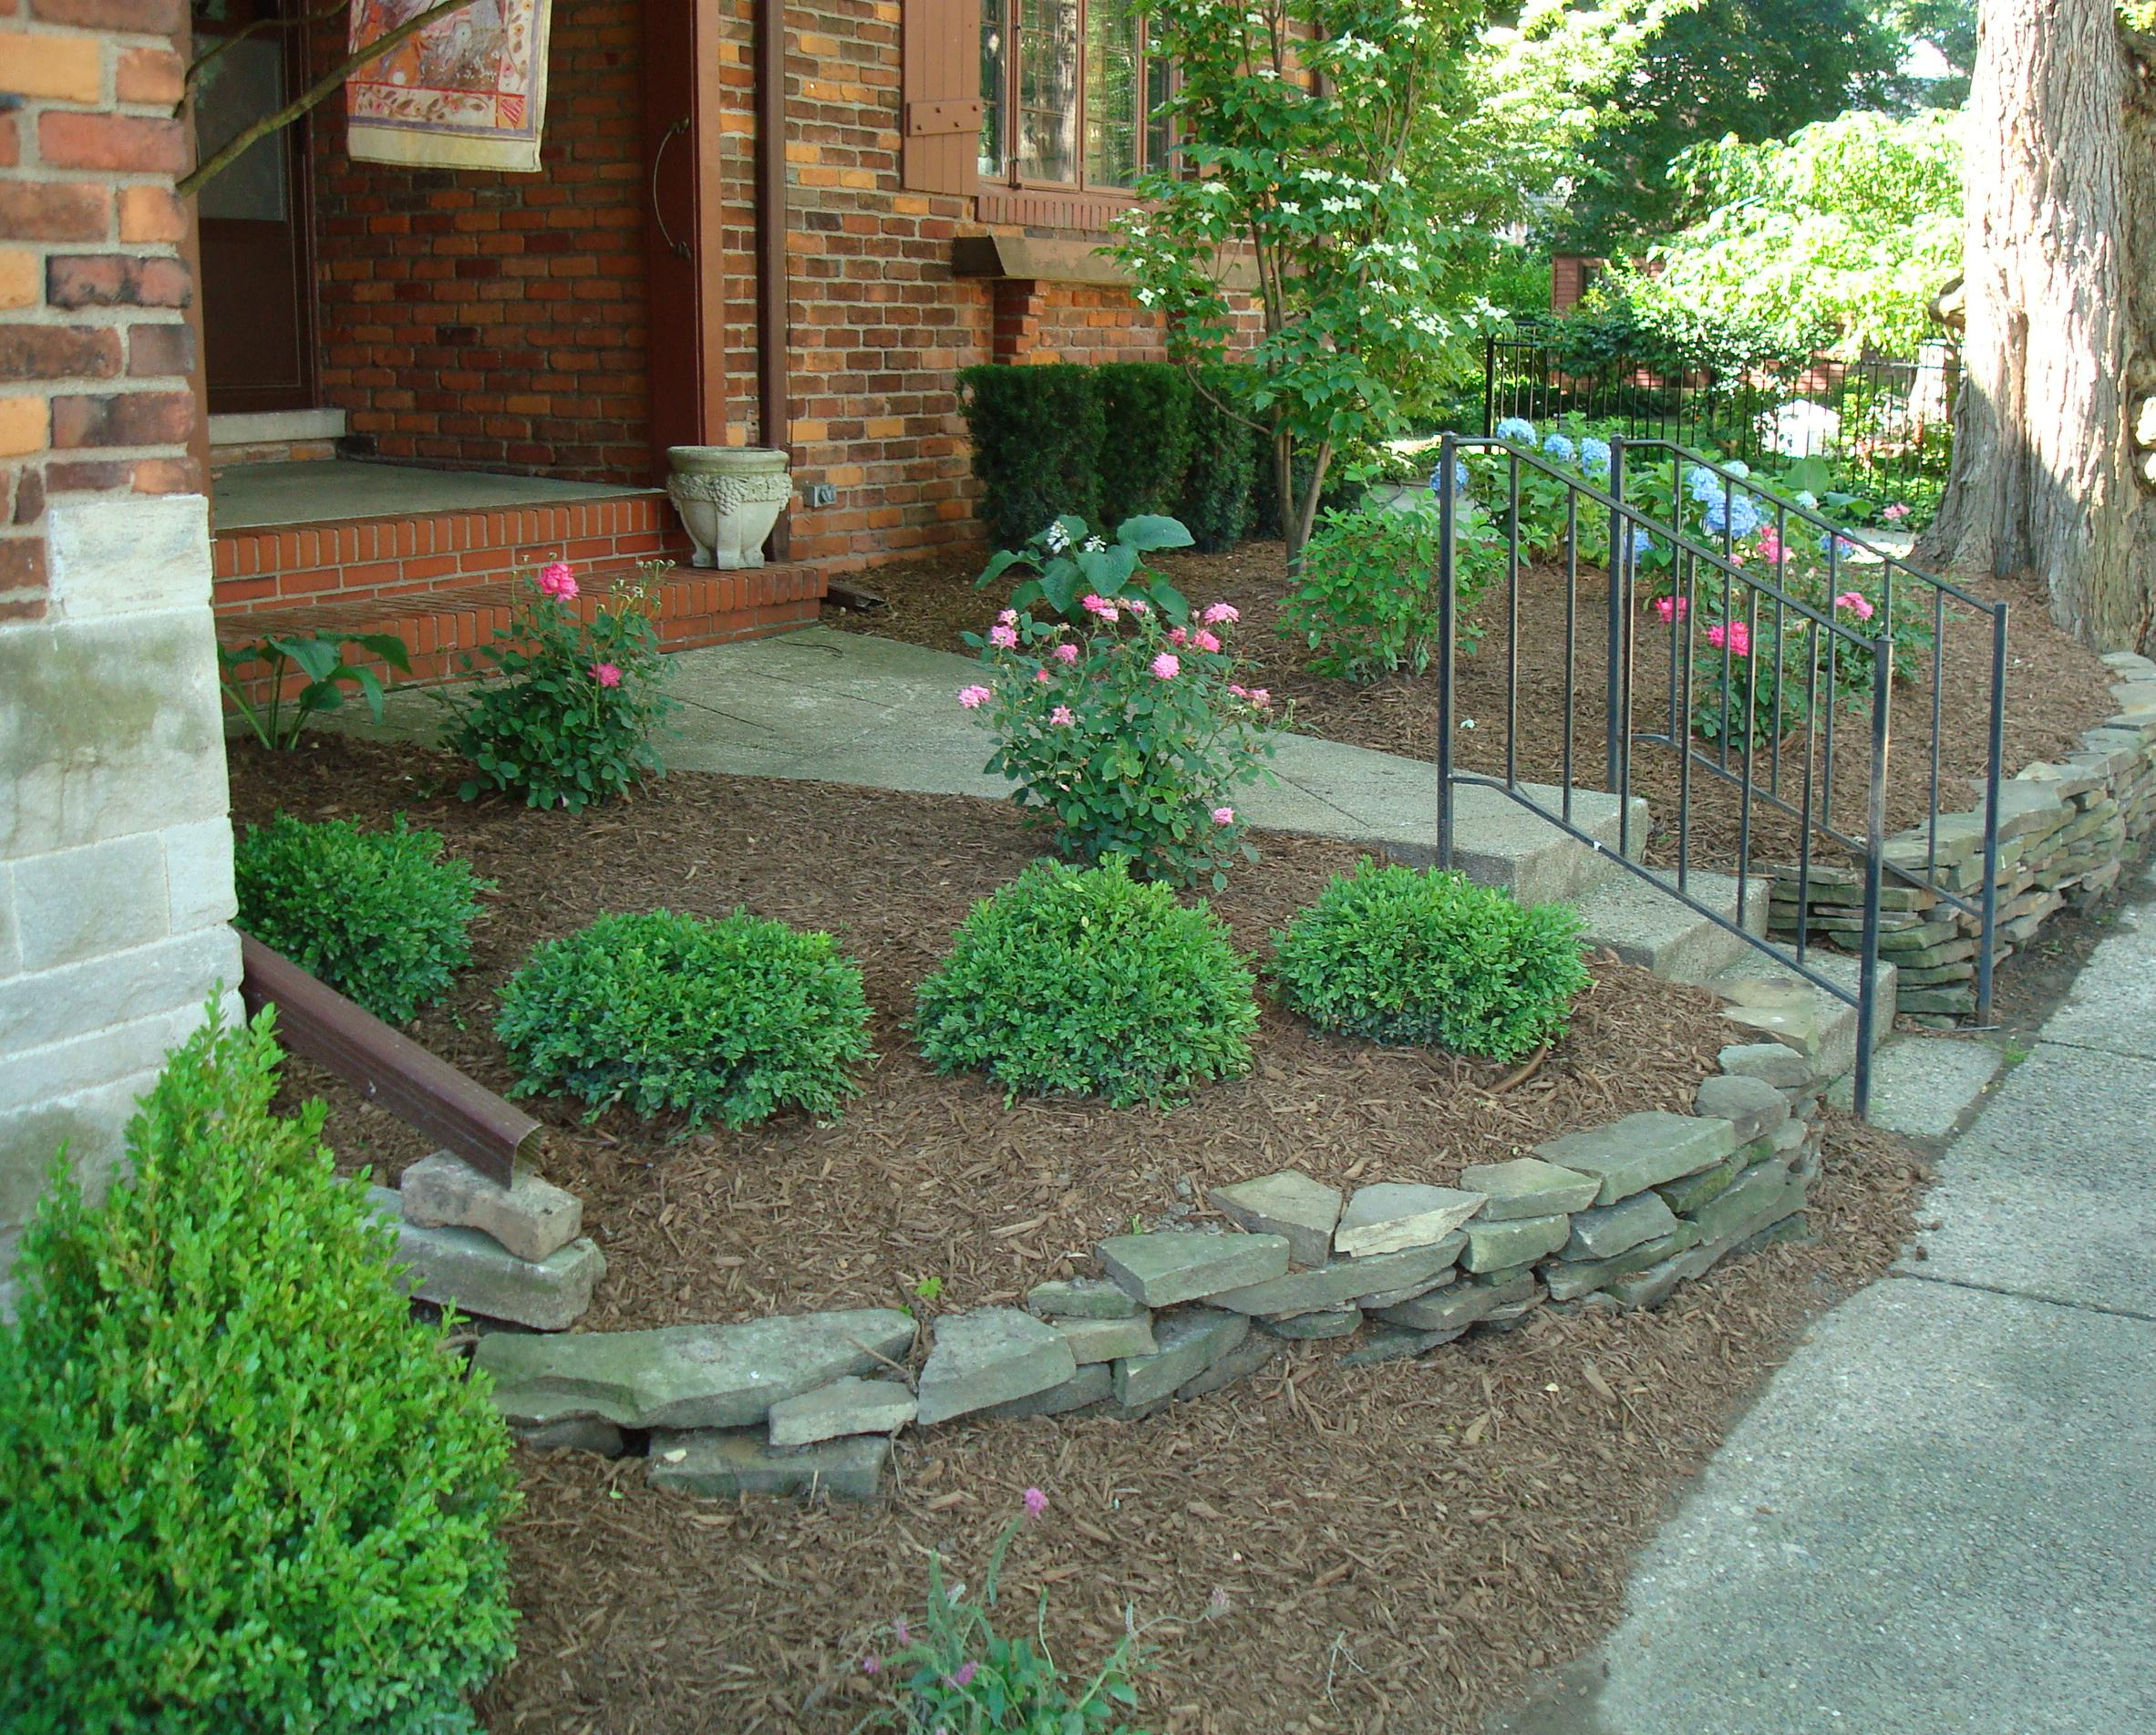 Redesigned Landscaping